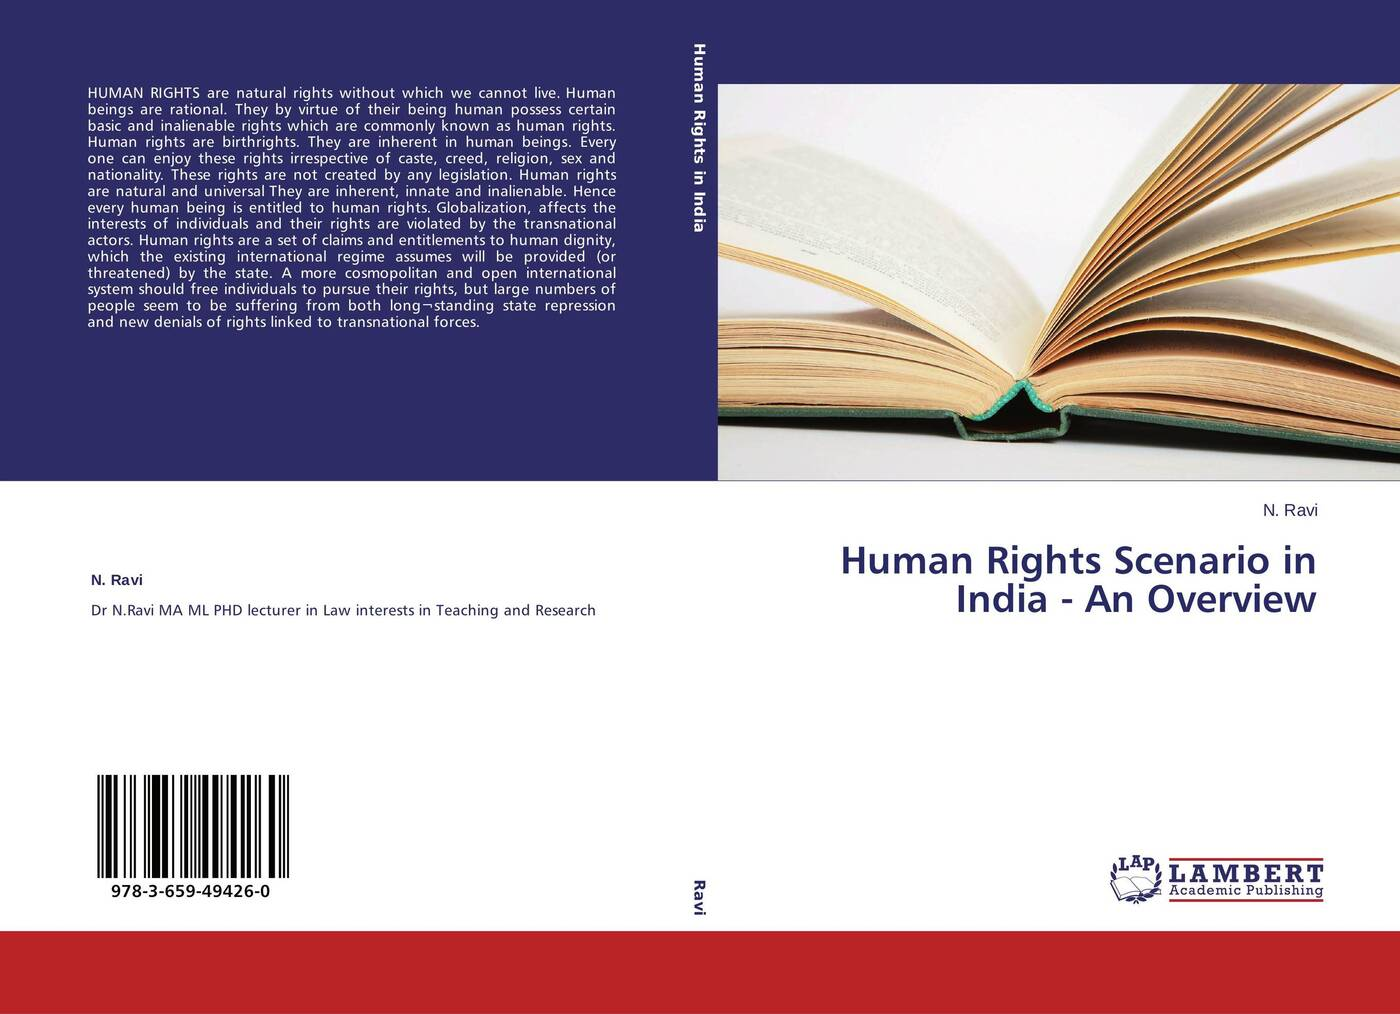 N. Ravi Human Rights Scenario in India - An Overview daniel levy natan sznaider human rights and memory